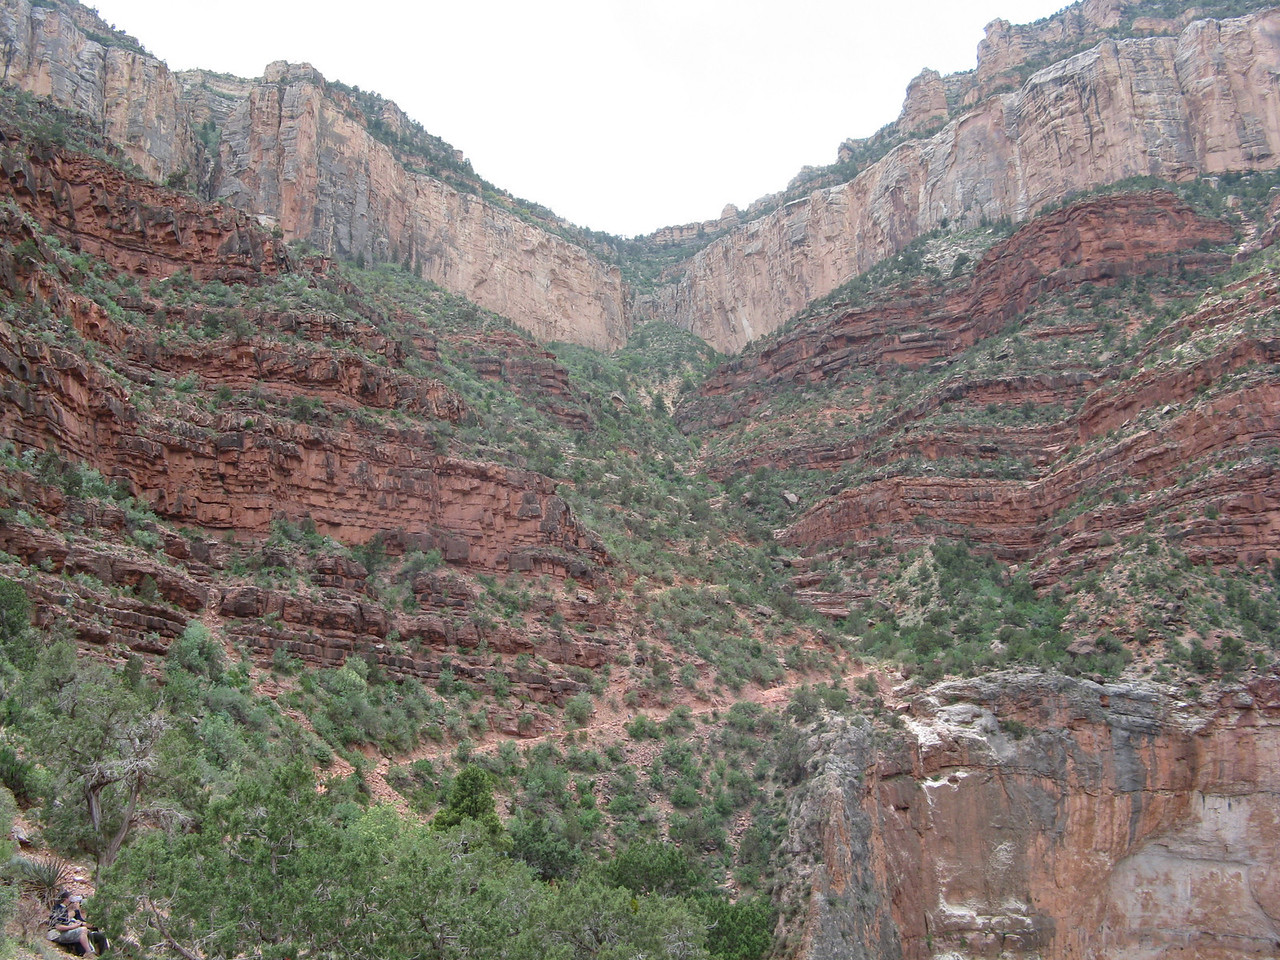 The cliffs at the top of the picture are Coconino sandstone, in the middle of the picture are the layers of the Supai Group, in the bottom right is part of the Redwall Limestone.  The Redwall Limestone cliffs on the west side of the fault are probably more than 100 feet higher than the cliffs on the east side of the fault.